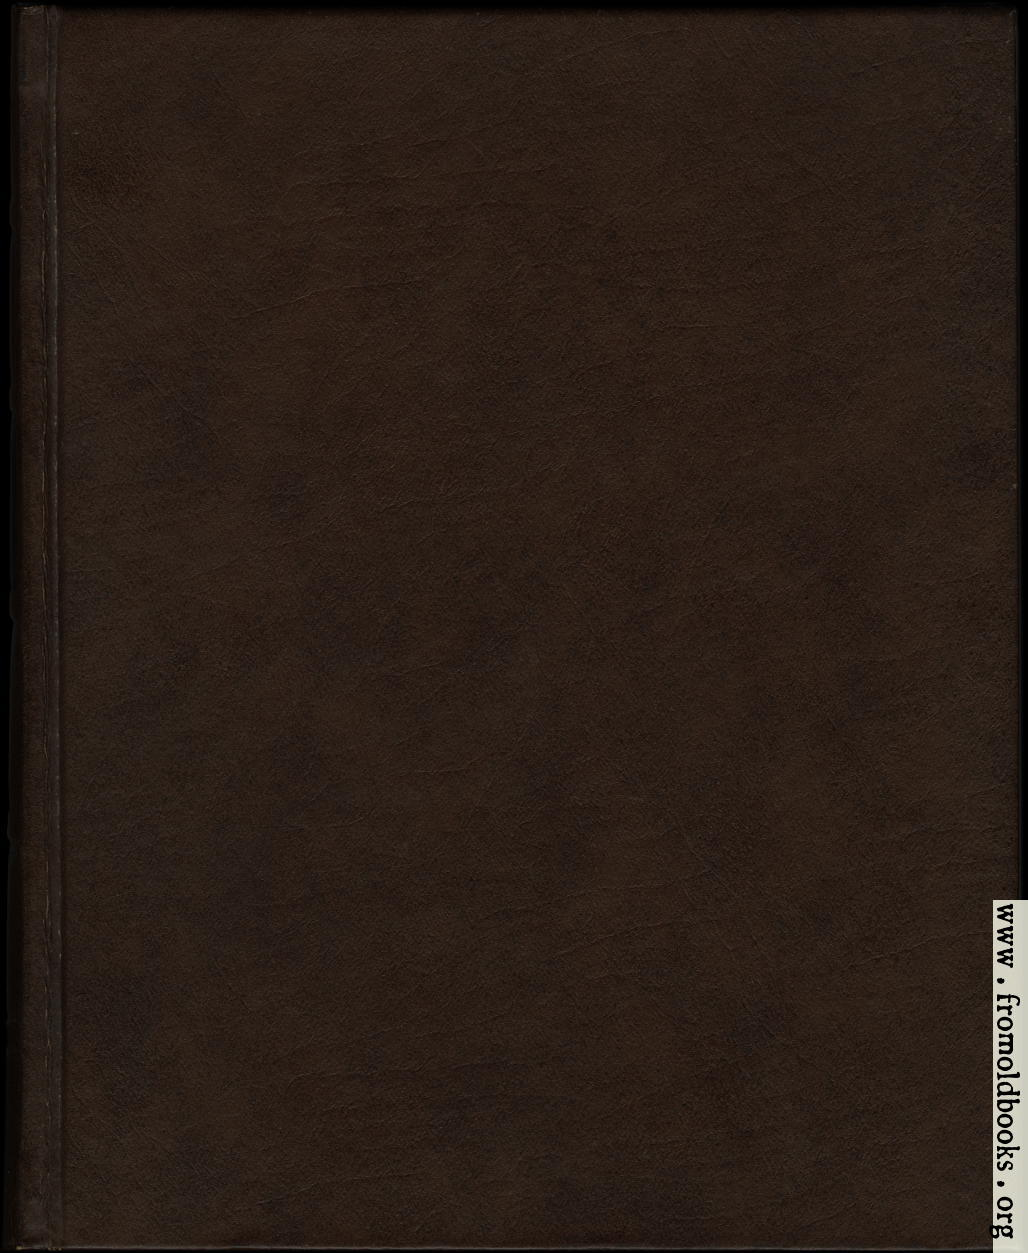 [Picture: Front Cover of the 1770 Encylopædia Britannica]